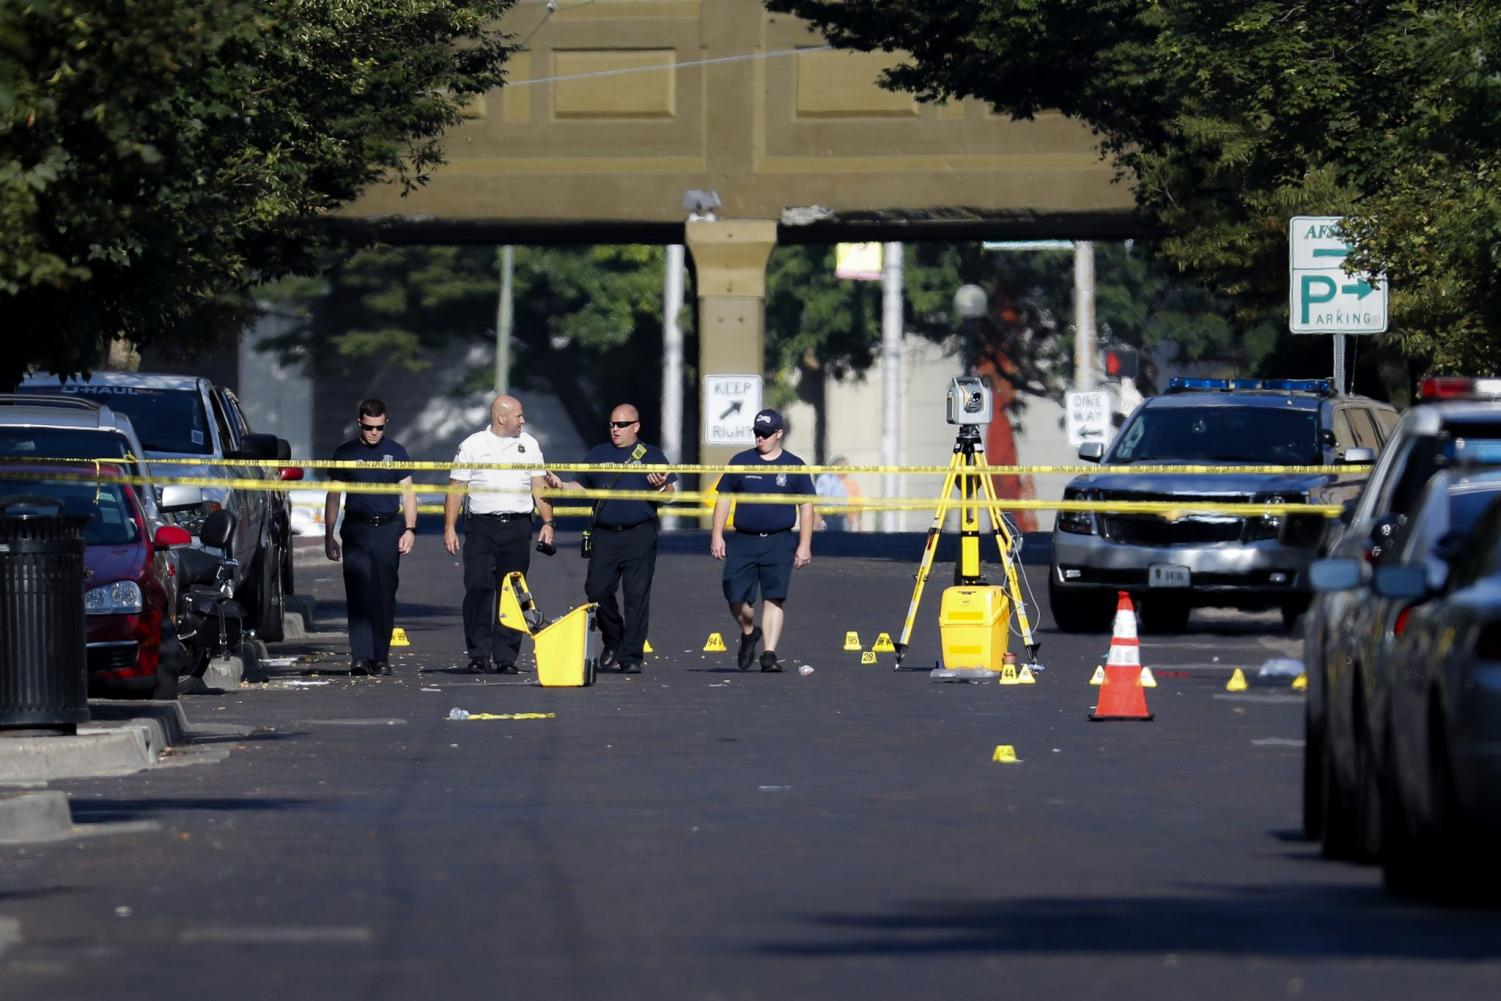 Authorities walk among evidence markers at the scene of a mass shooting, Sunday, Aug. 4, 2019, in Dayton, Ohio. Severral people in Ohio have been killed in the second mass shooting in the U.S. in less than 24 hours, and the suspected shooter is also deceased, police said.